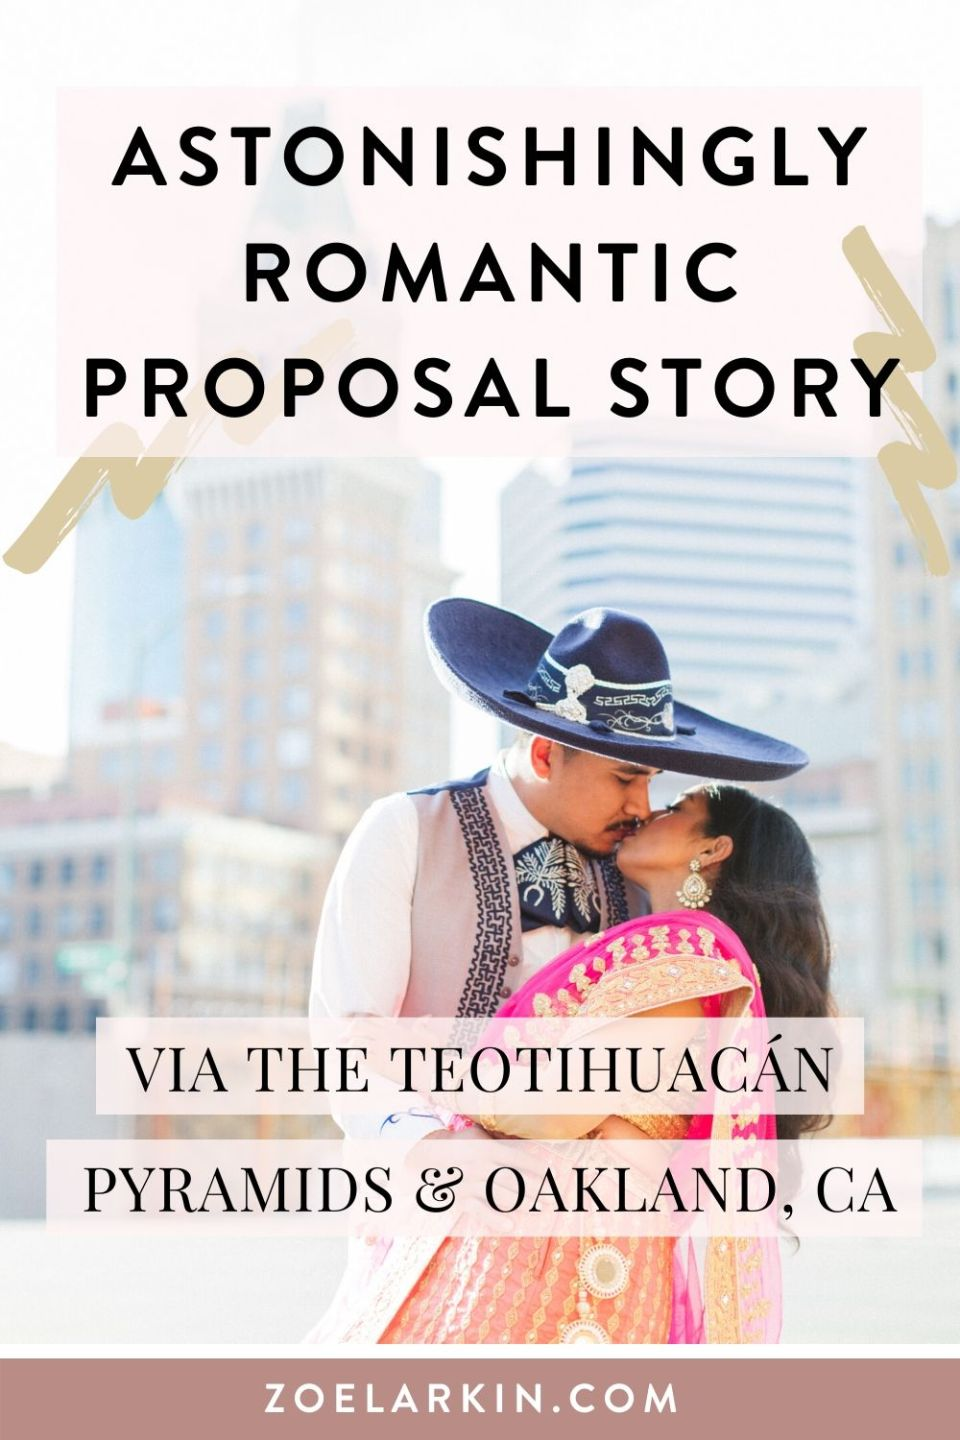 Proposal inspiration right here! This romantic story will warm your heart. This couple met at work and since then have been raising a family. Find out what happened when Jorge took Falisha to the pyramids in Mexico and how he popped the question. What he asked friends and family to do before he proposed was the most touching thing I've ever heard. Click to see this romantic proposal story as told to Zoe Larkin Photography and previously featured on Catalyst Wed Co! #proposalstory #gettingmarried #engaged #bayareaweddingphotographer #weddinginspo #wedspo| Zoe Larkin Photography